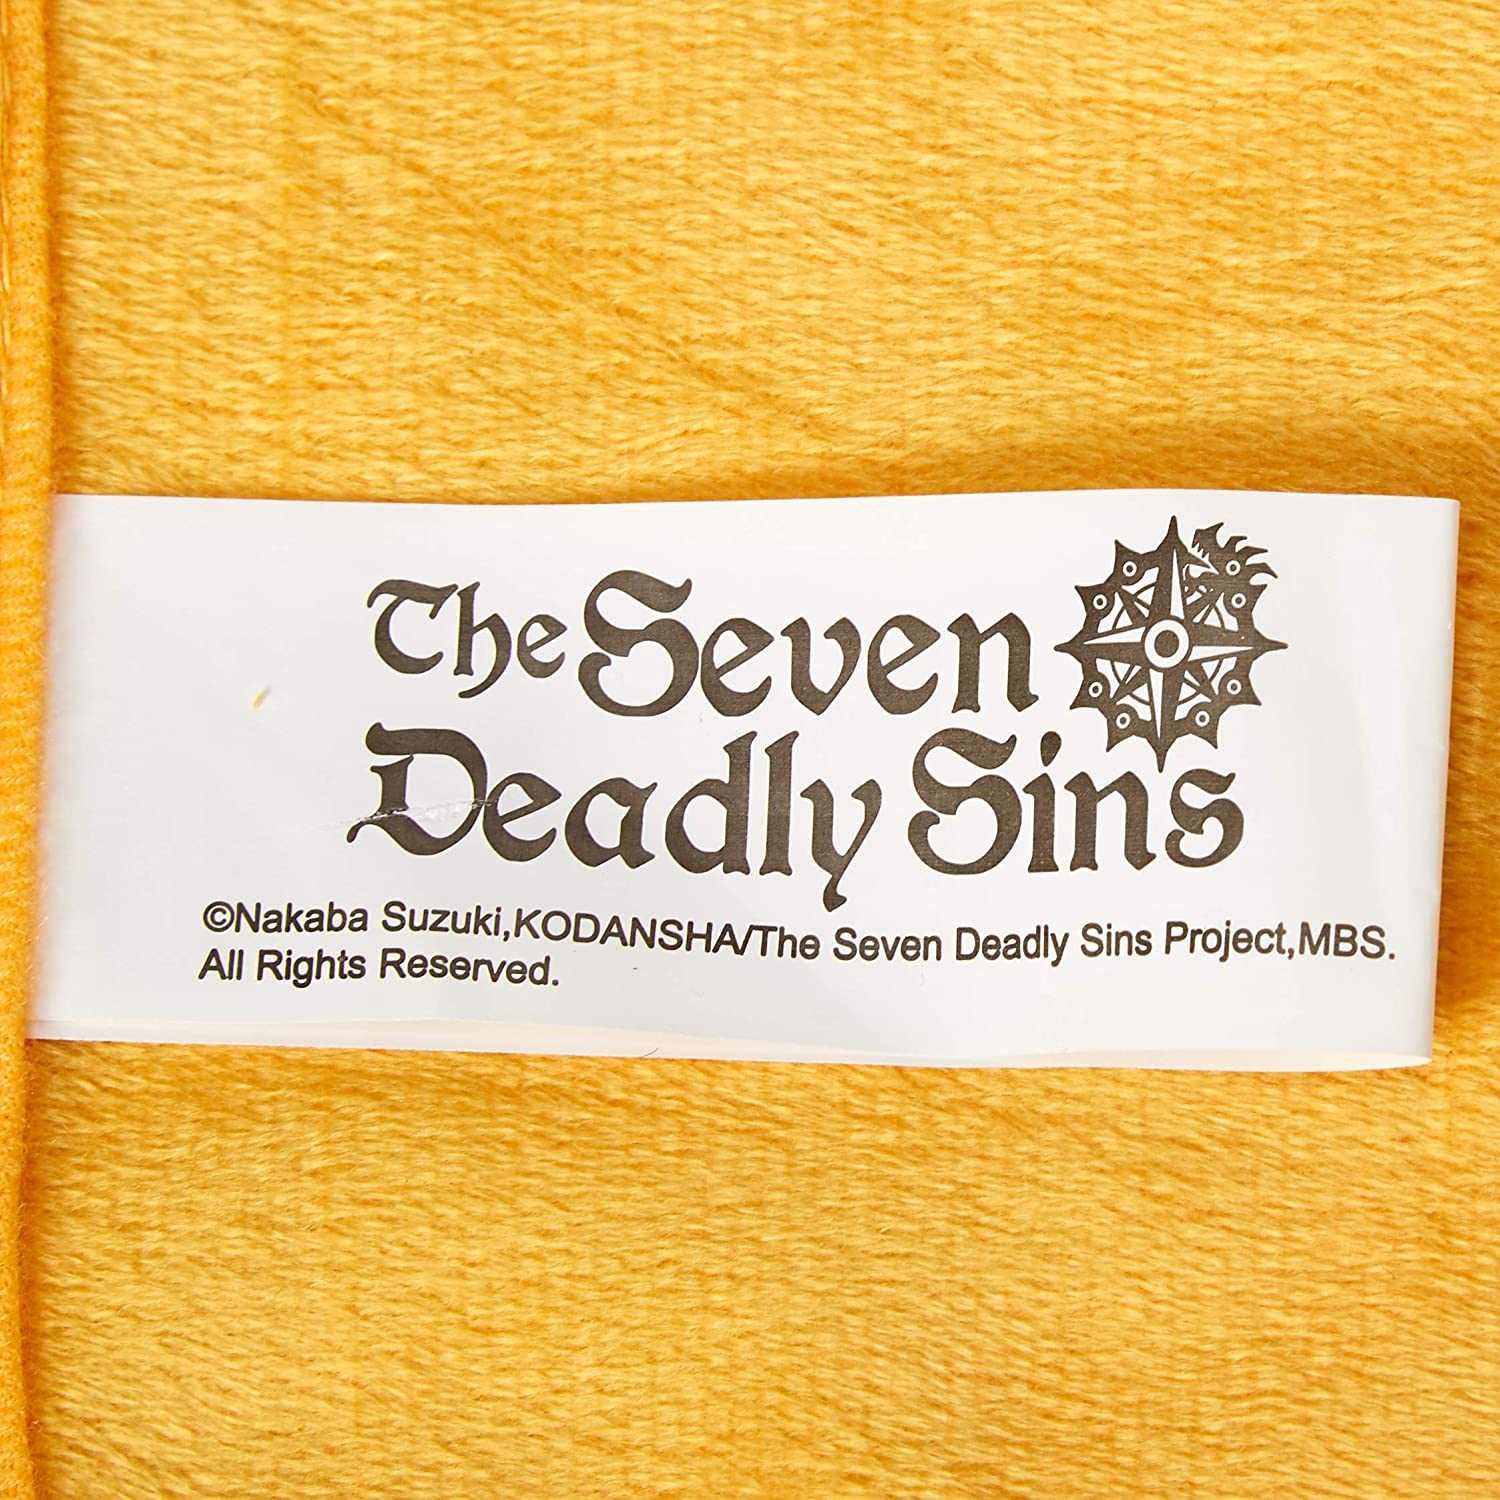 The Seven Deadly Sins 57873 Ban One Size Multicolor Melodias /& Hawk Throw Blanket